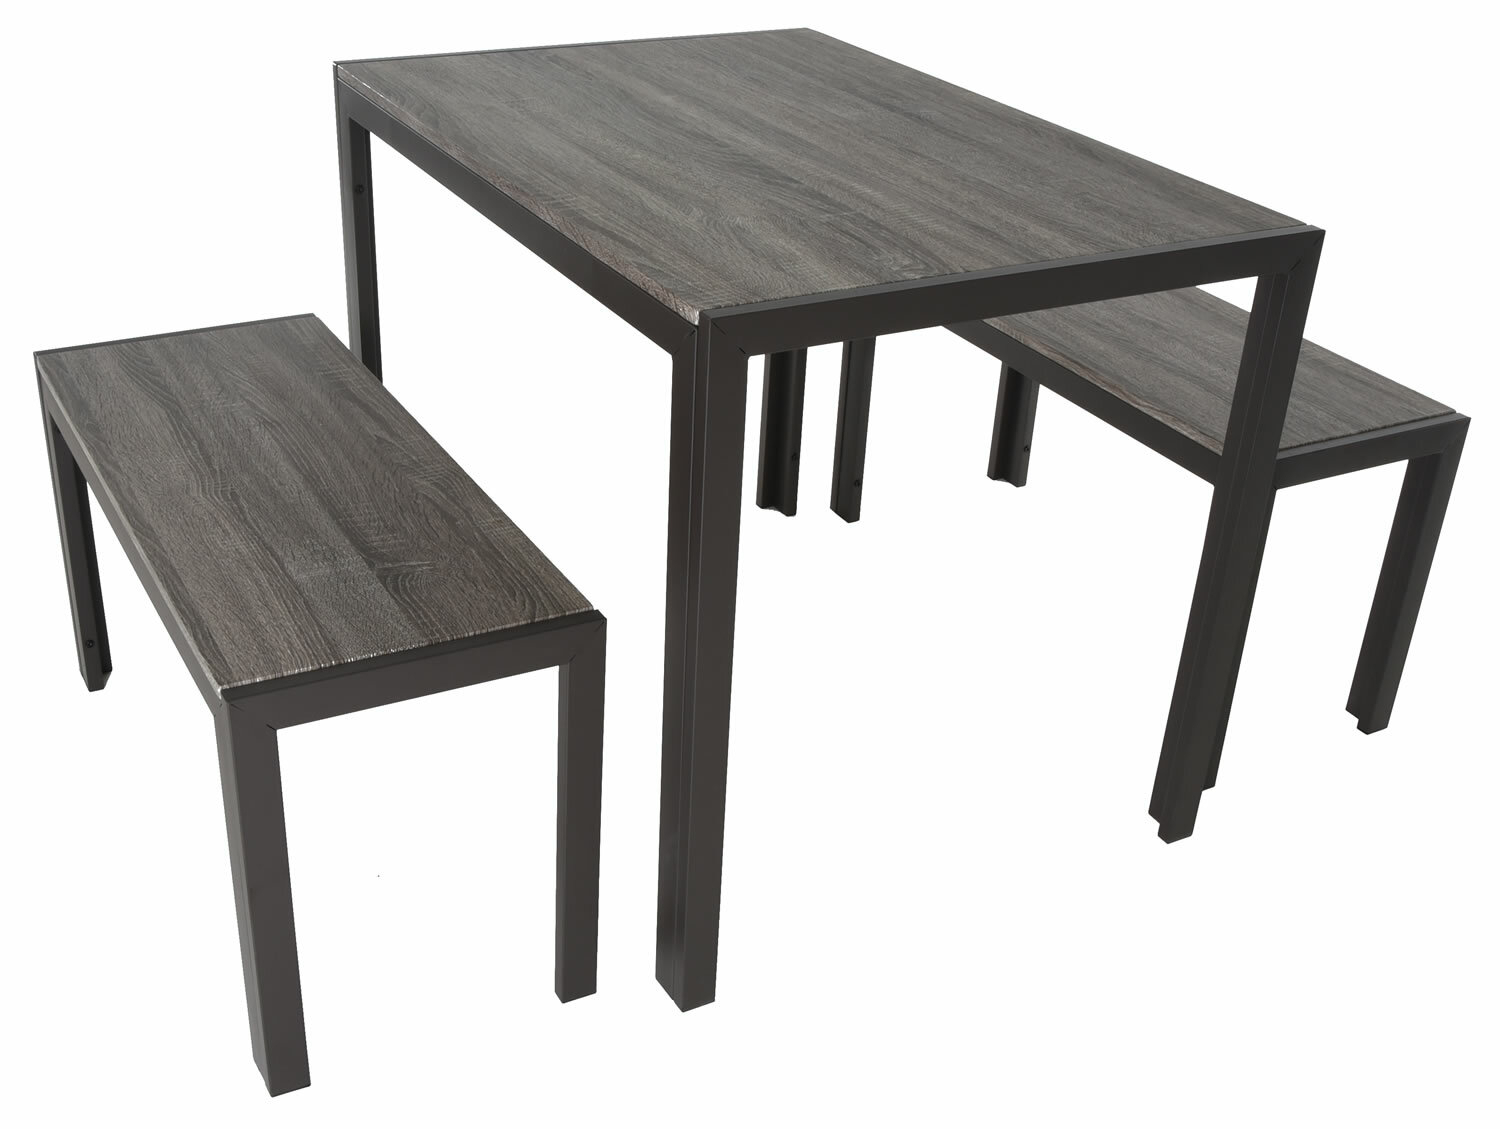 Maloney 3 Piece Breakfast Nook Dining Set Intended For Newest Maloney 3 Piece Breakfast Nook Dining Sets (Photo 1 of 20)